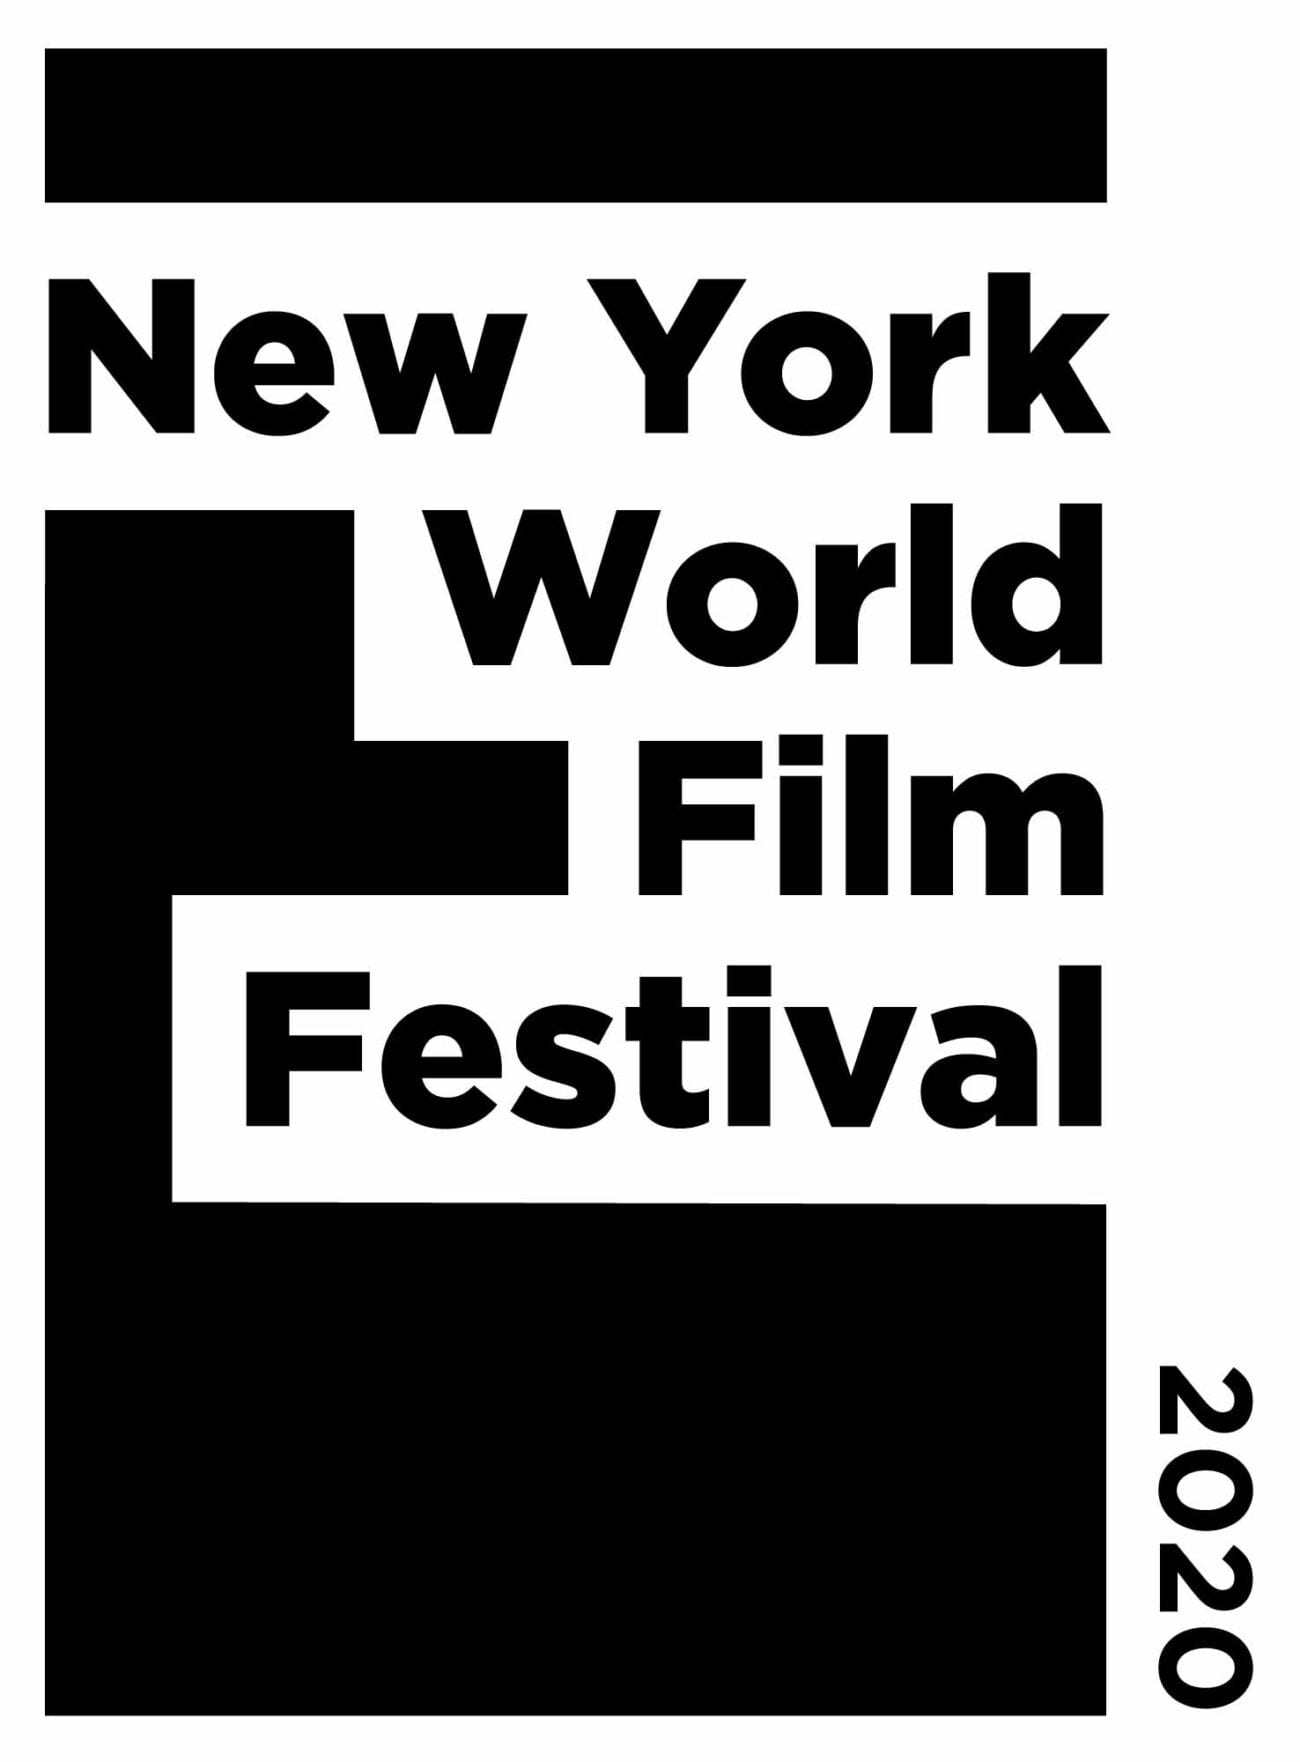 The first ever New York World Film Festival was supposed to occur back in April. But just as the world's changed, so has this year's event.